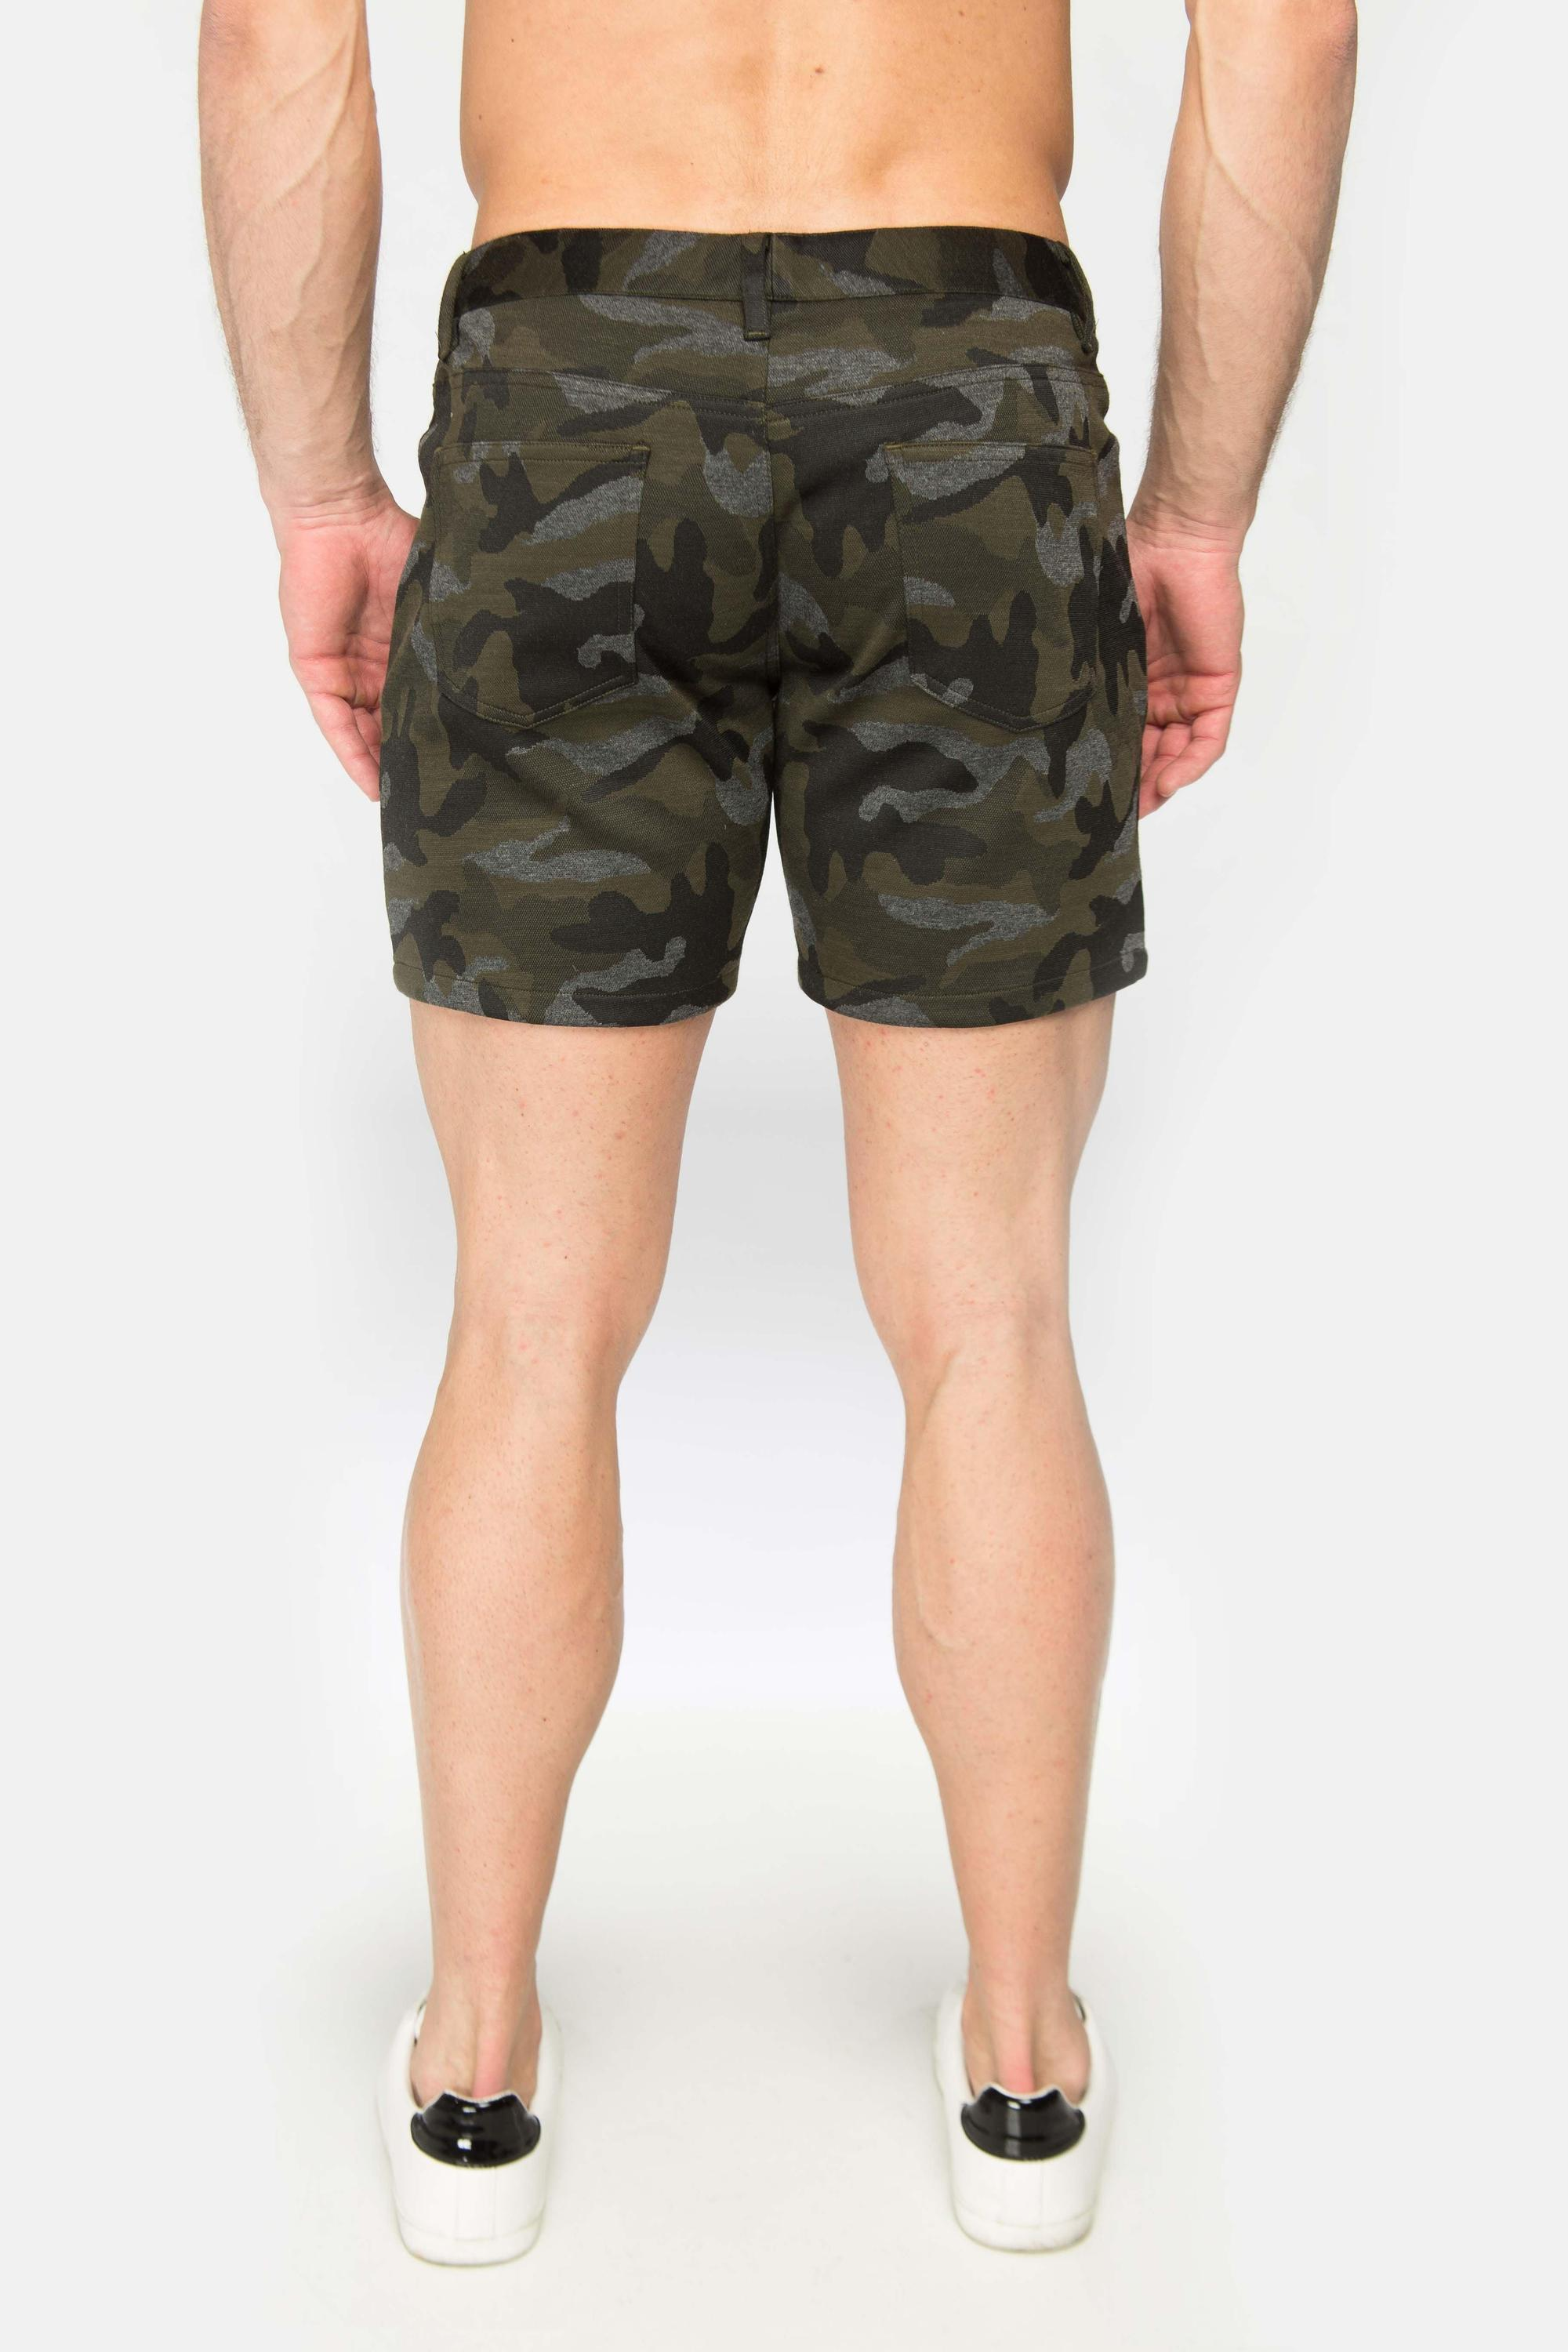 PRINTED STRETCH KNIT SHORT - Olive